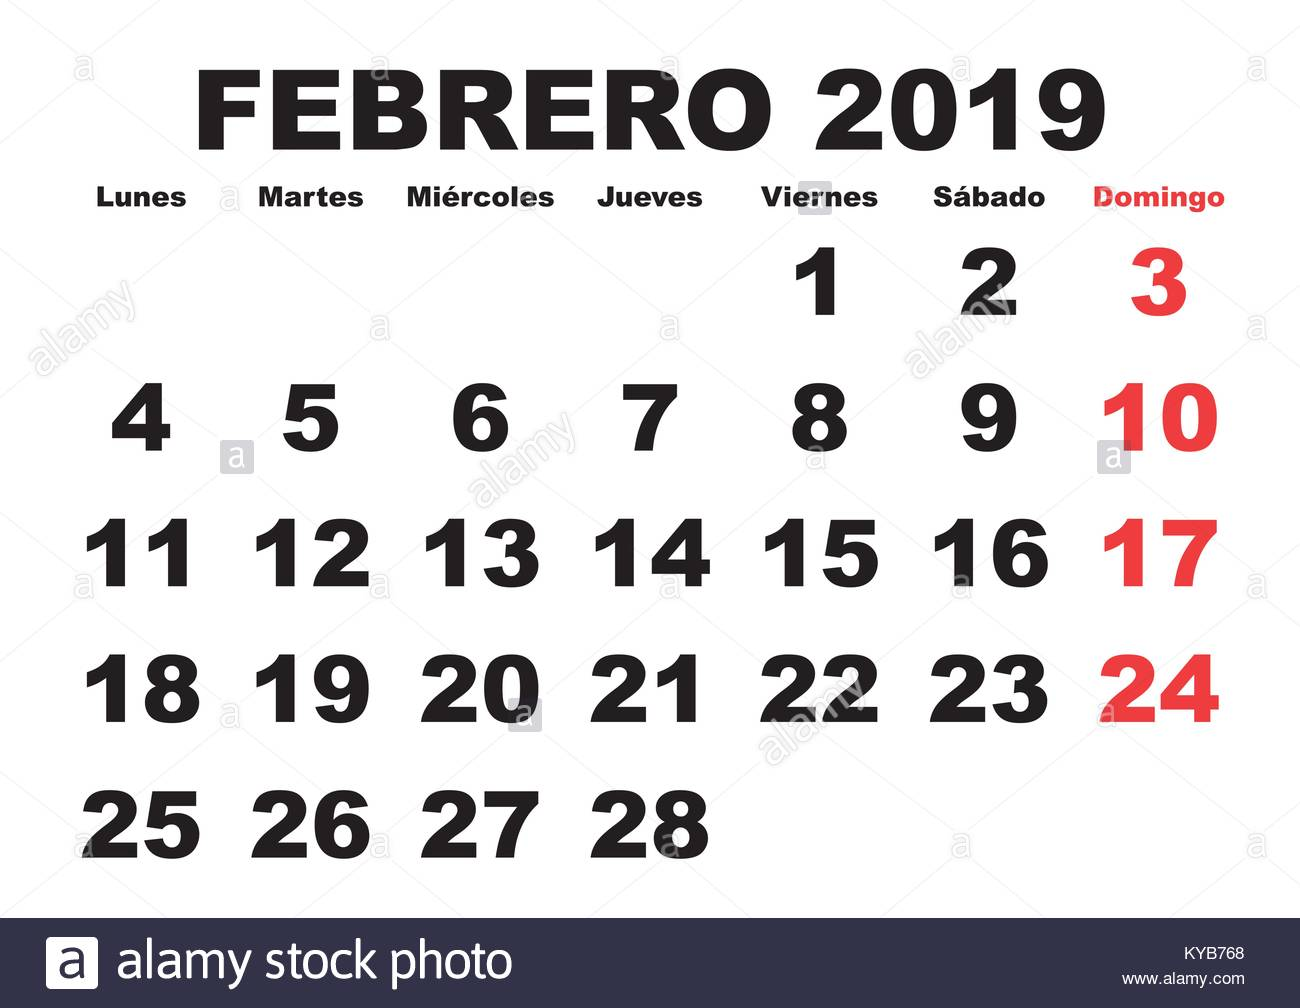 how to say february in spanish